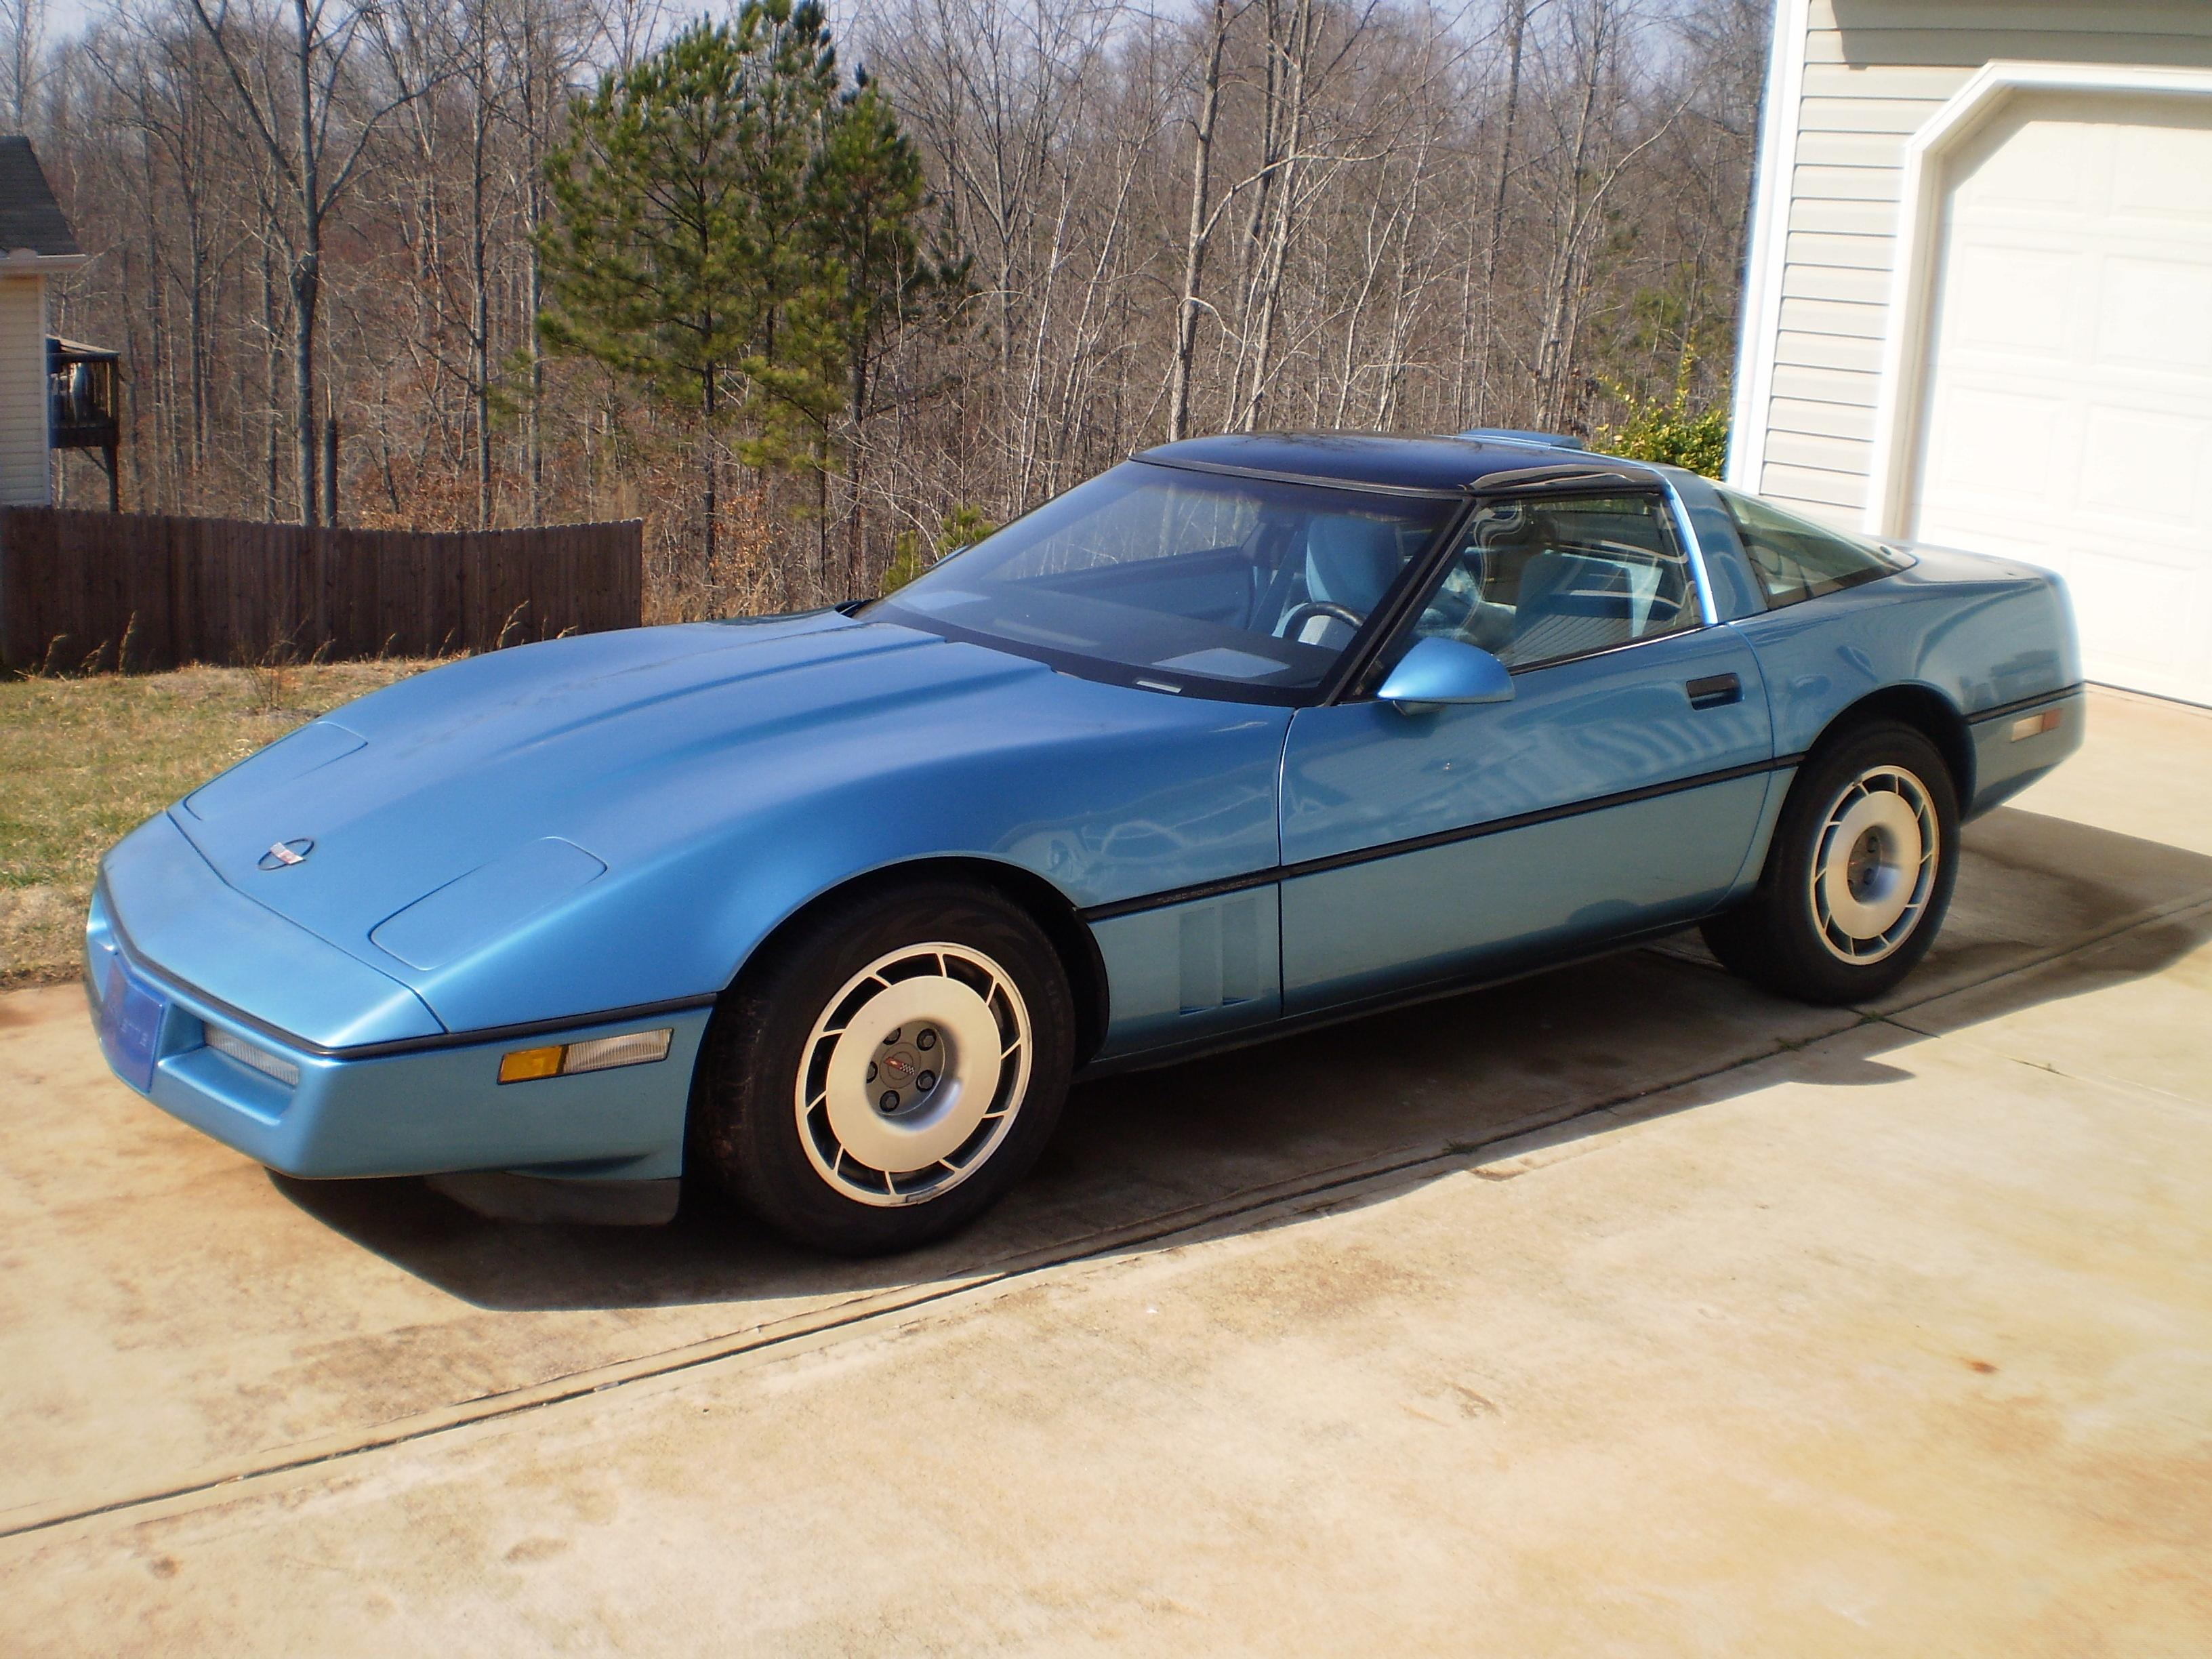 1987 C4 Corvette Ultimate Guide Overview Specs Vin Info 1999 Chevrolet Fuel Pump Relay Control Circuit And The Diagnostic Trouble Code Specifications